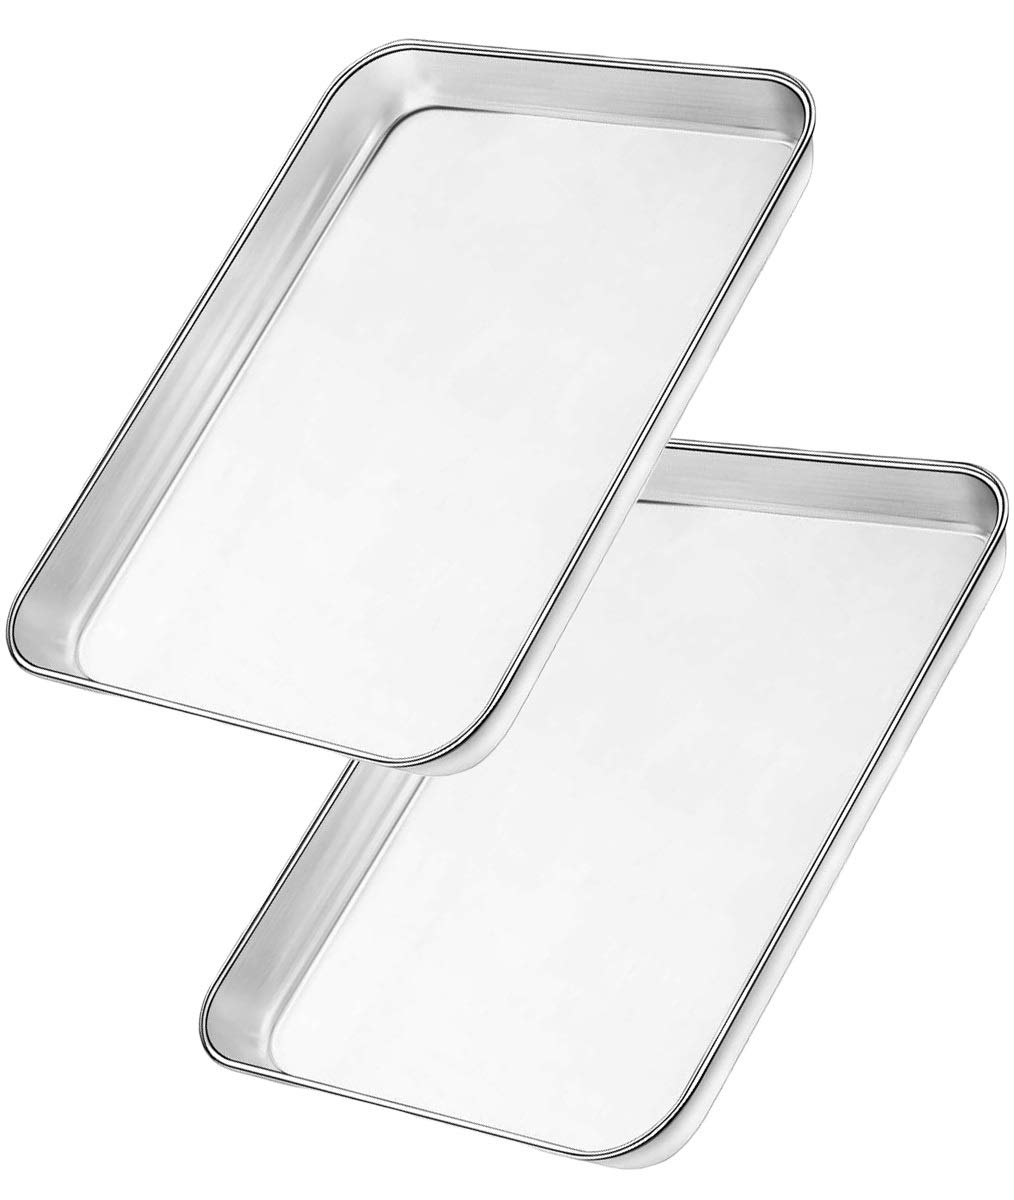 Bangder Heavy Duty Stainless Steel Sheet Pan Easily Wipes Clean! Baking Sheet Pan for Toaster Oven, Mirror Finish & Rust Free, Dishwasher Safe, 16 X 12 inch, Set of 2